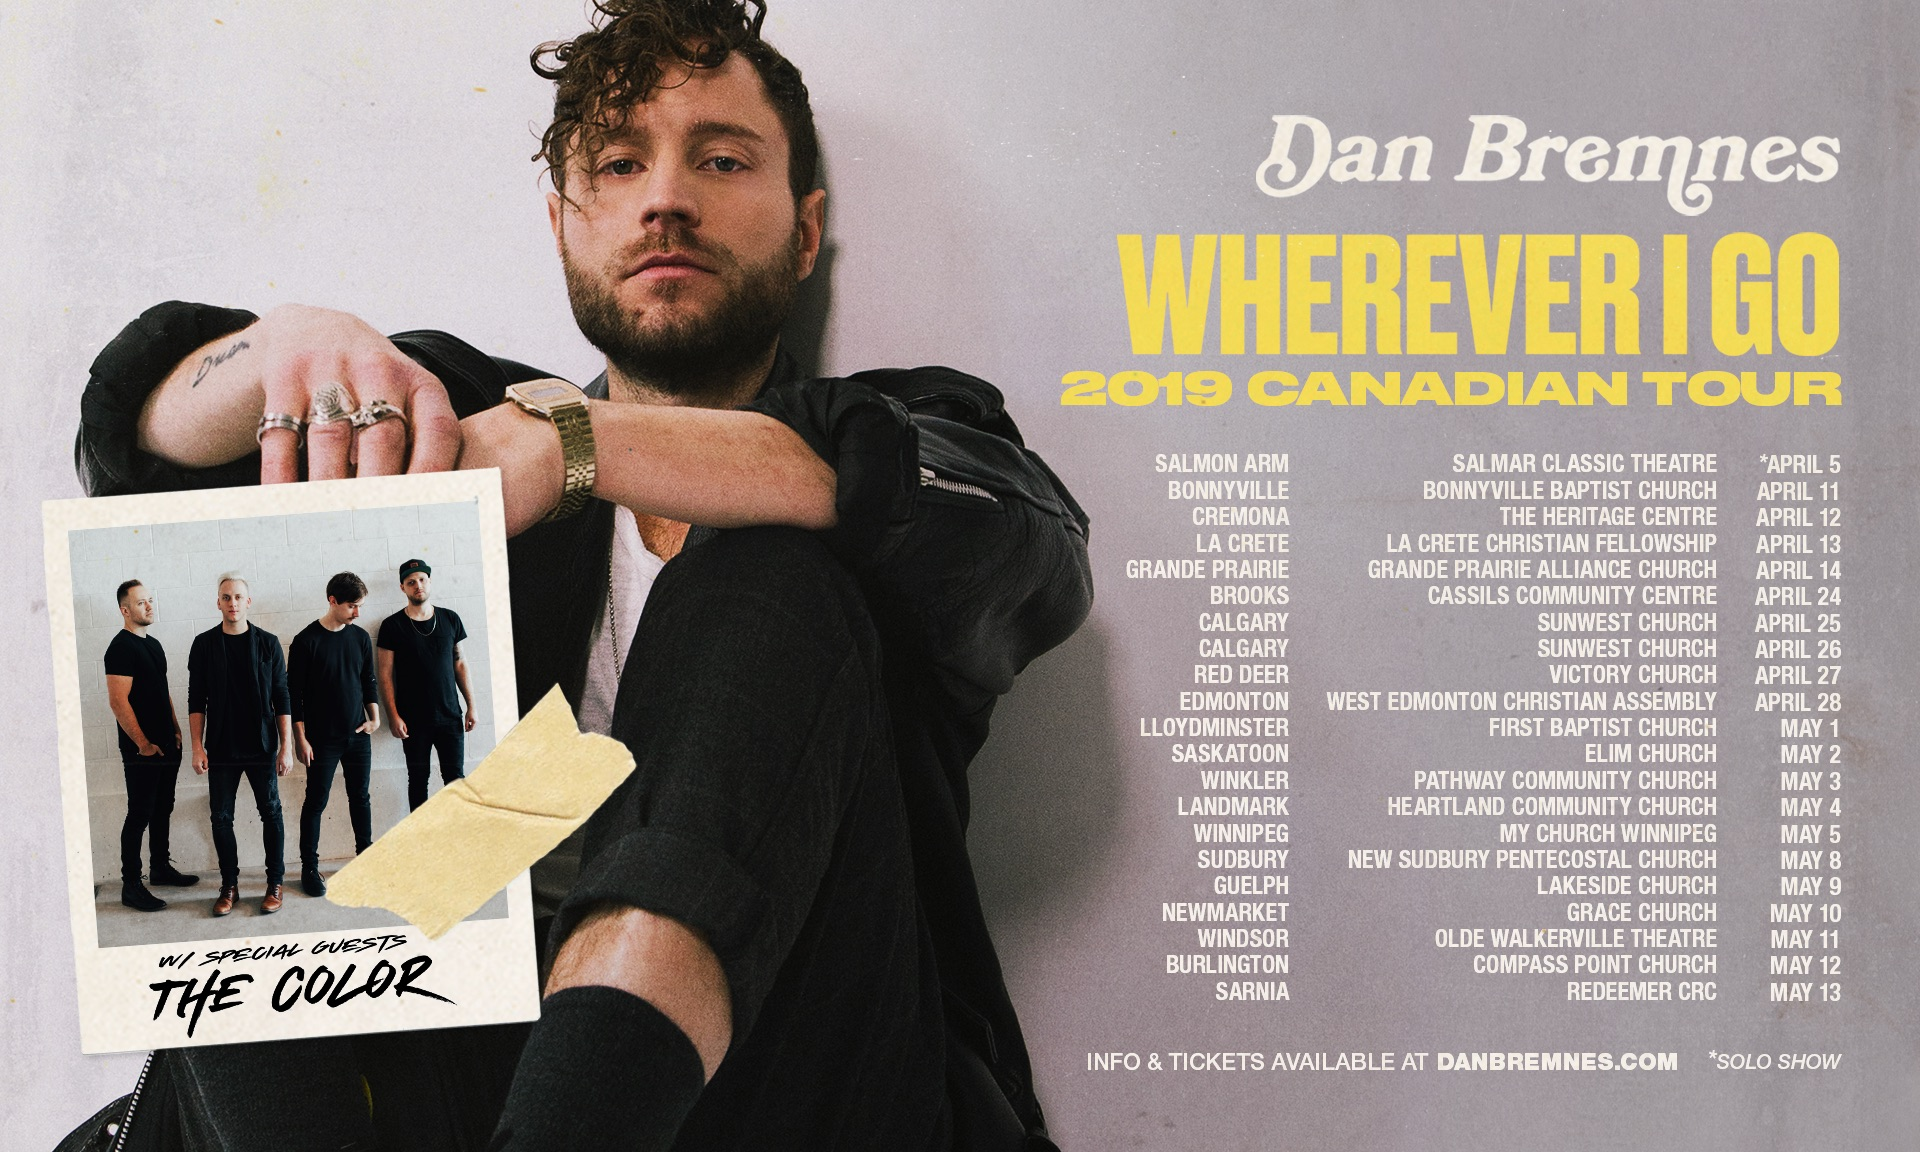 Tickets for Dan Bremnes, Wherever I Go Tour with The Color in Grand Prairie from BuzzTix